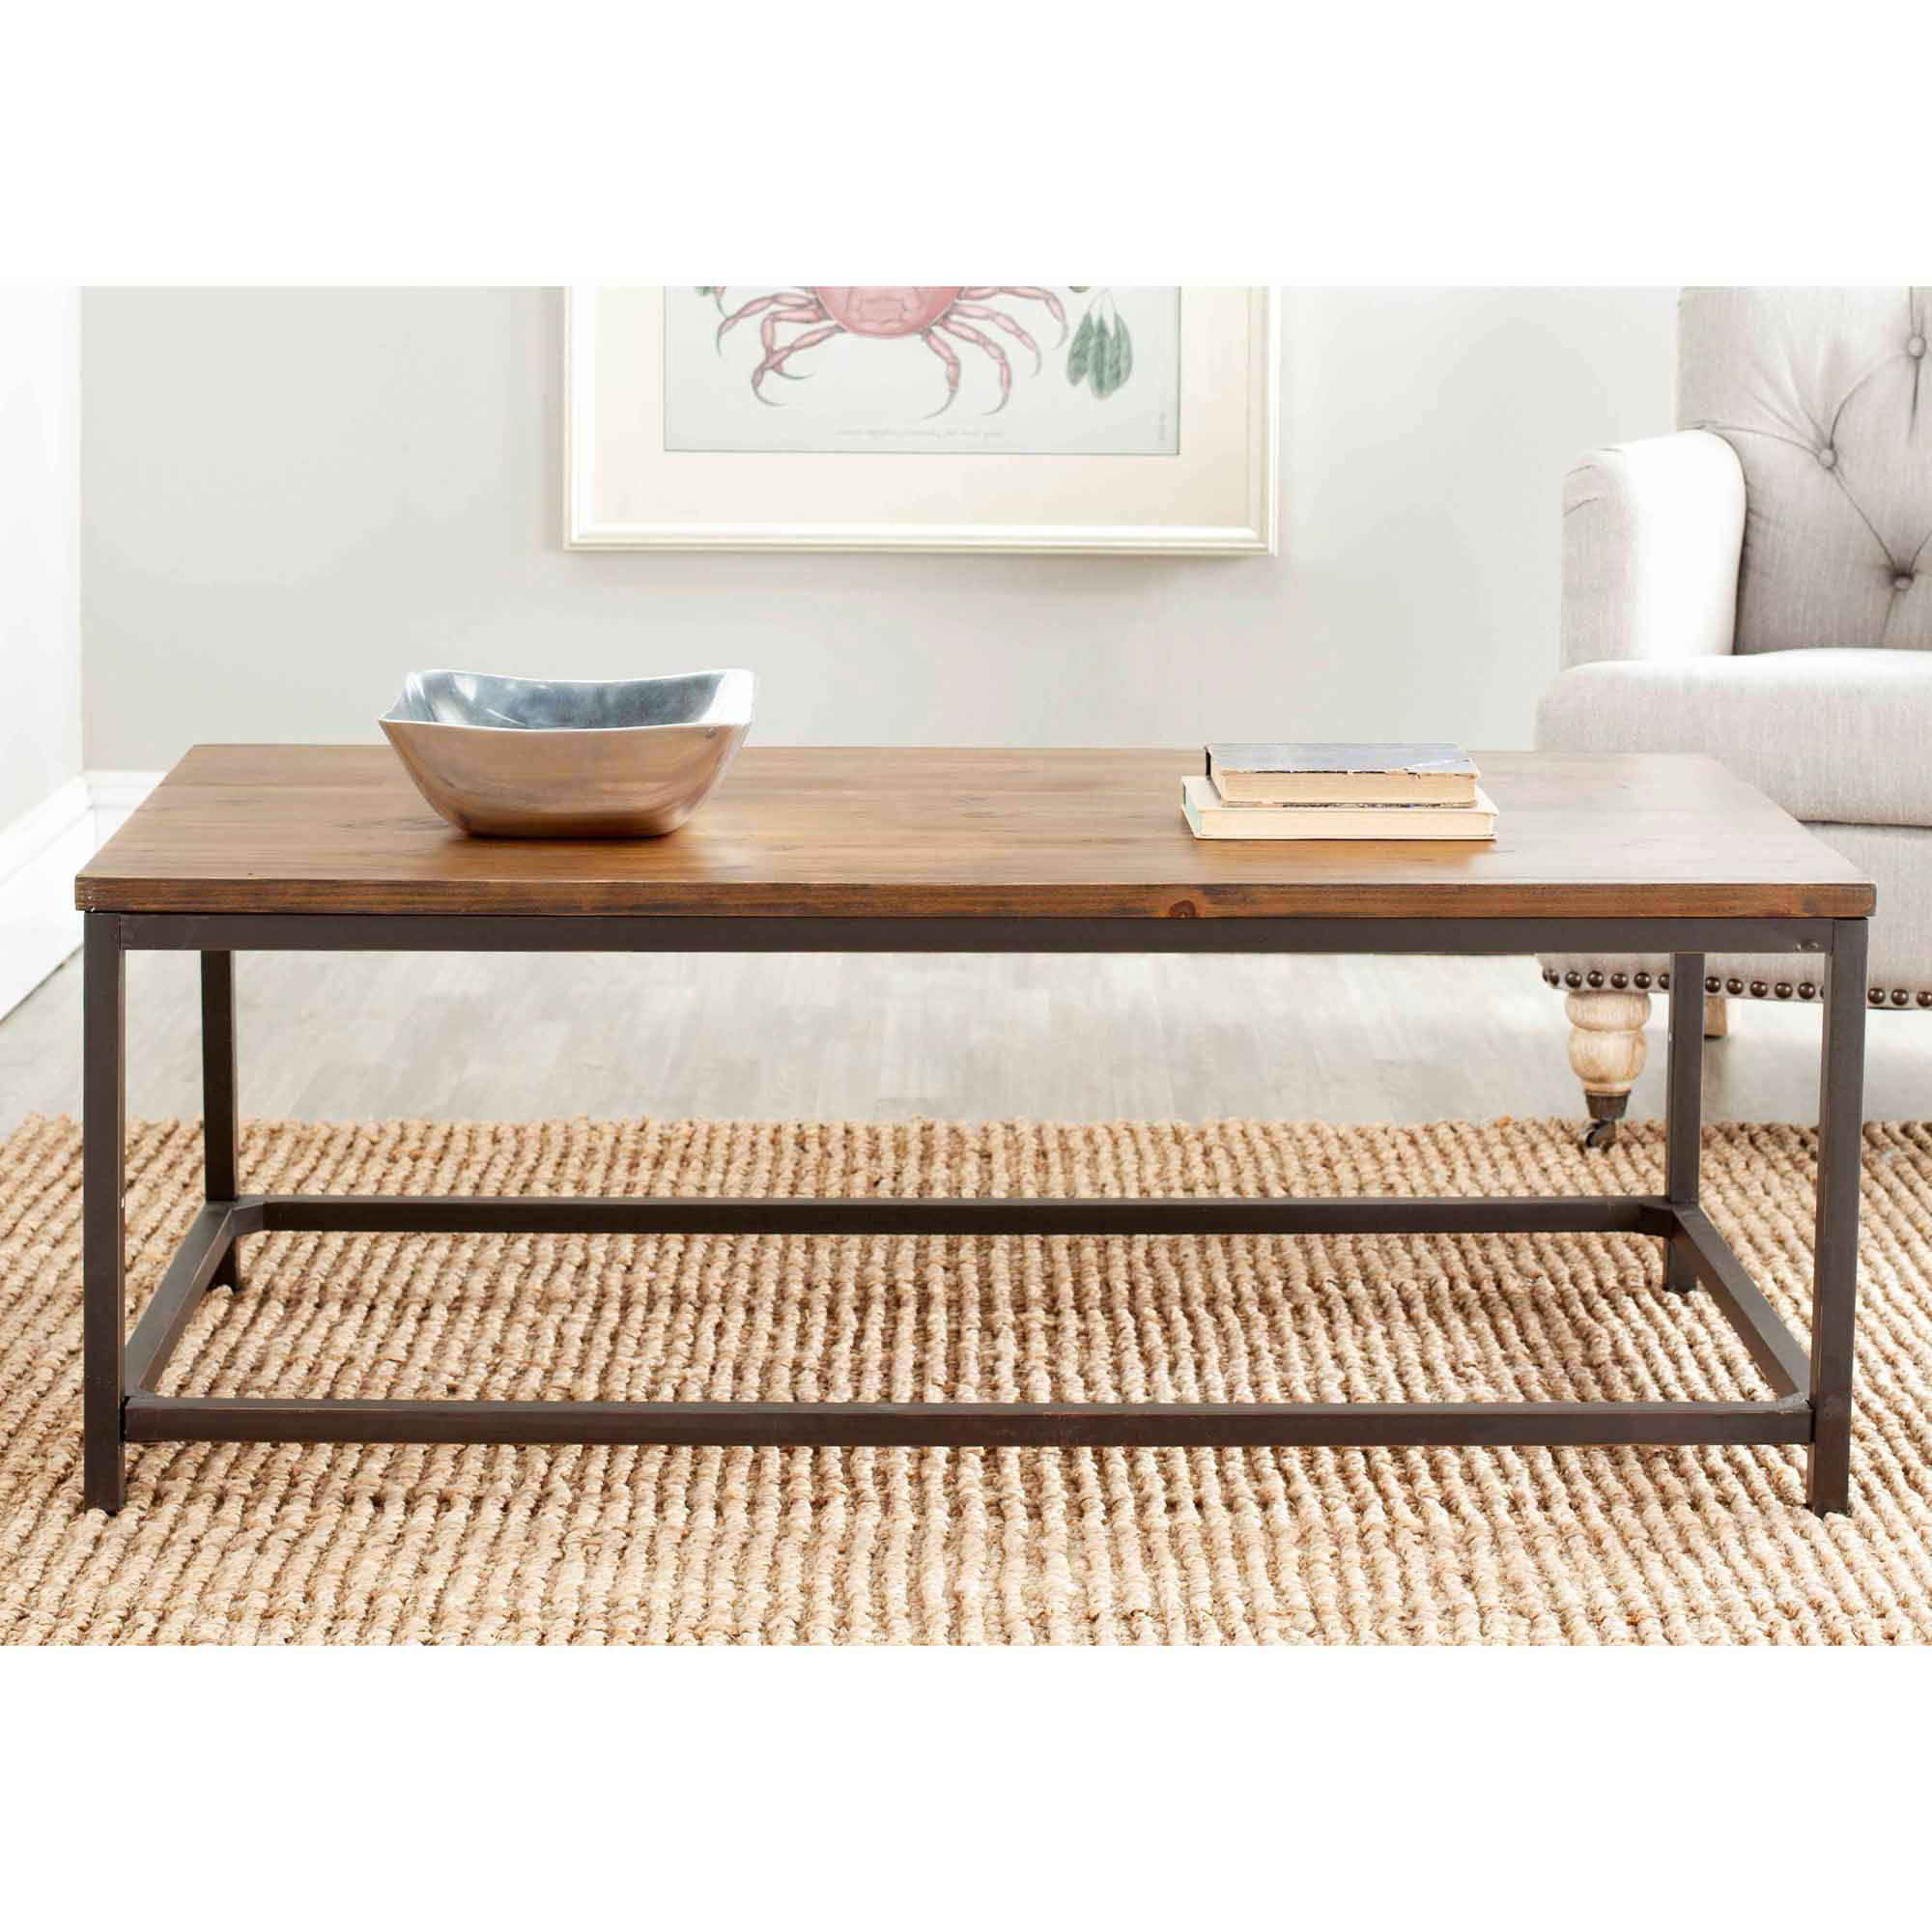 Safavieh Alec Coffee Table, Multiple Finishes